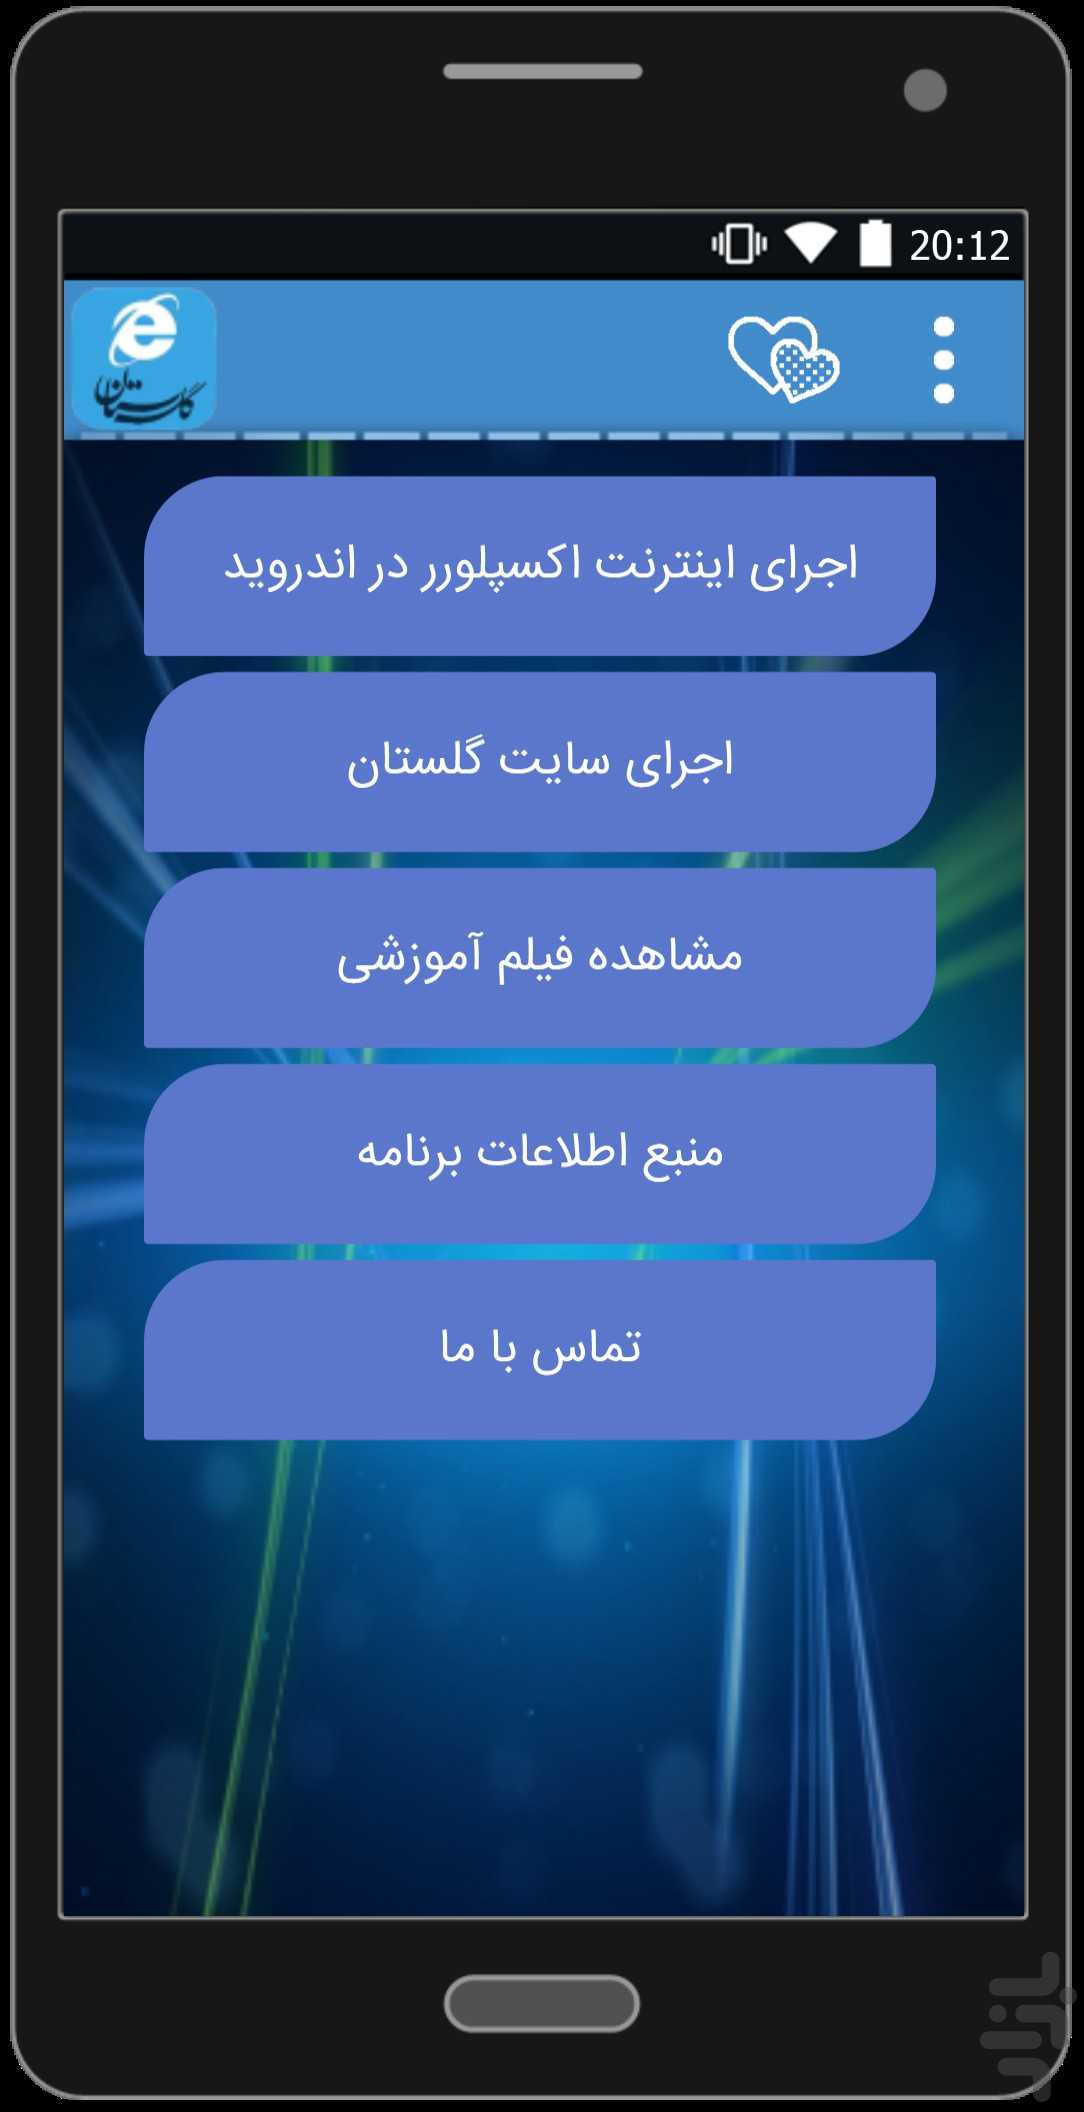 Phone Internet Explorer Download For Android Phones internet explorer for android download install apps screenshot